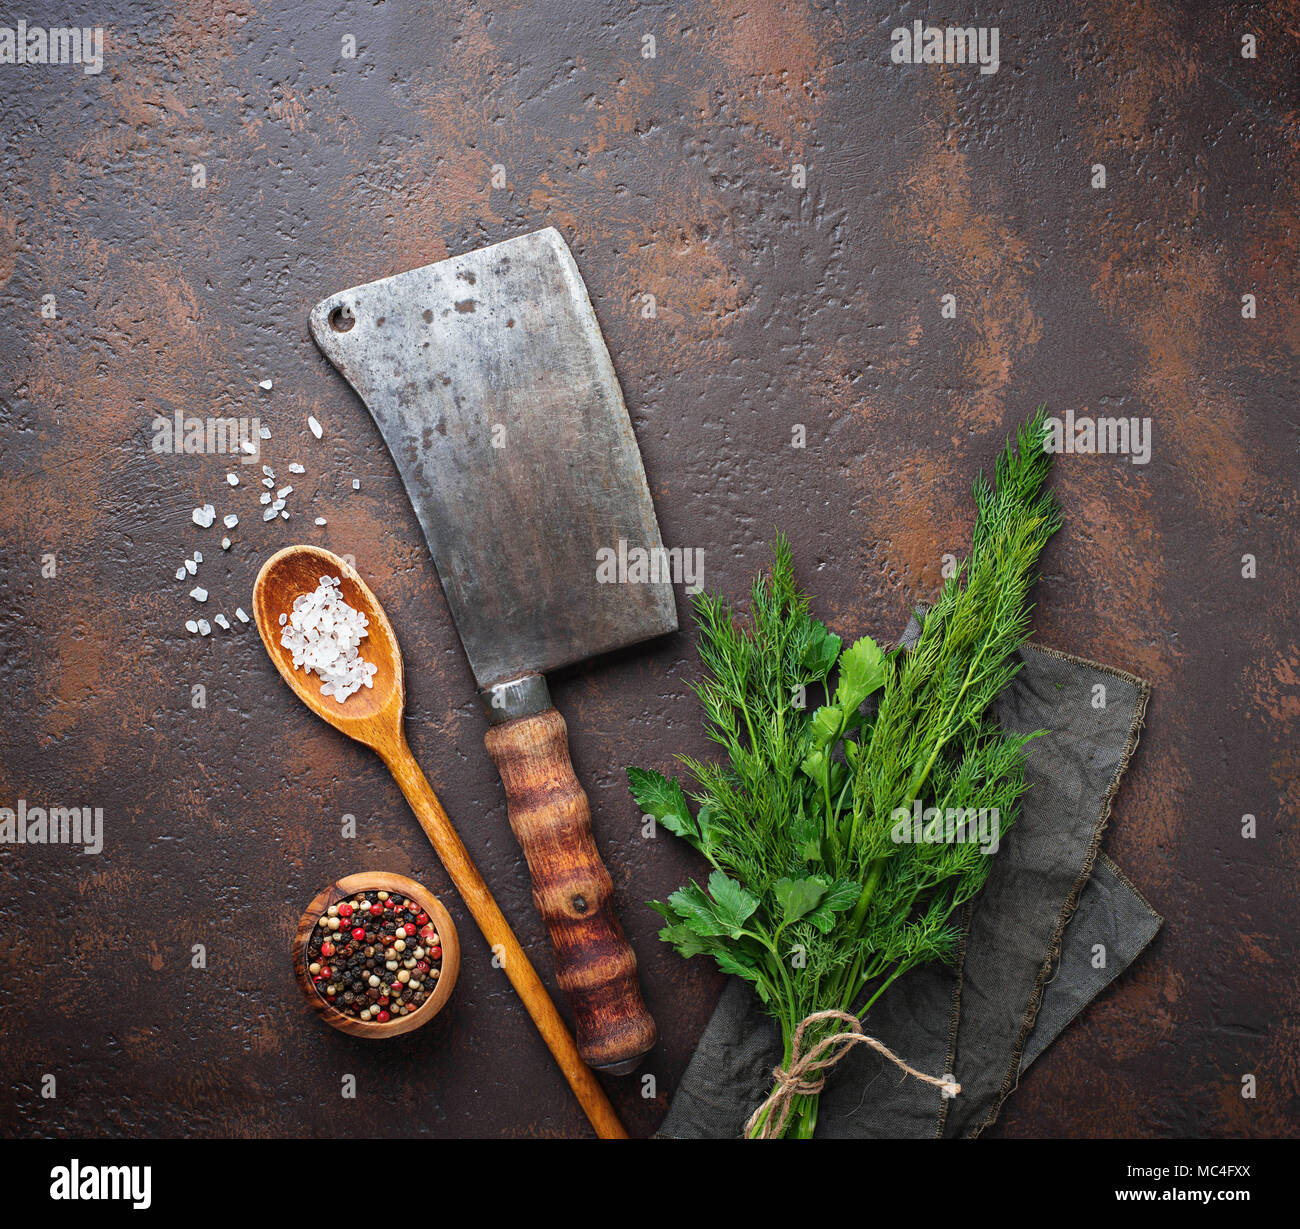 Butchers vintage cleaver with spices  - Stock Image